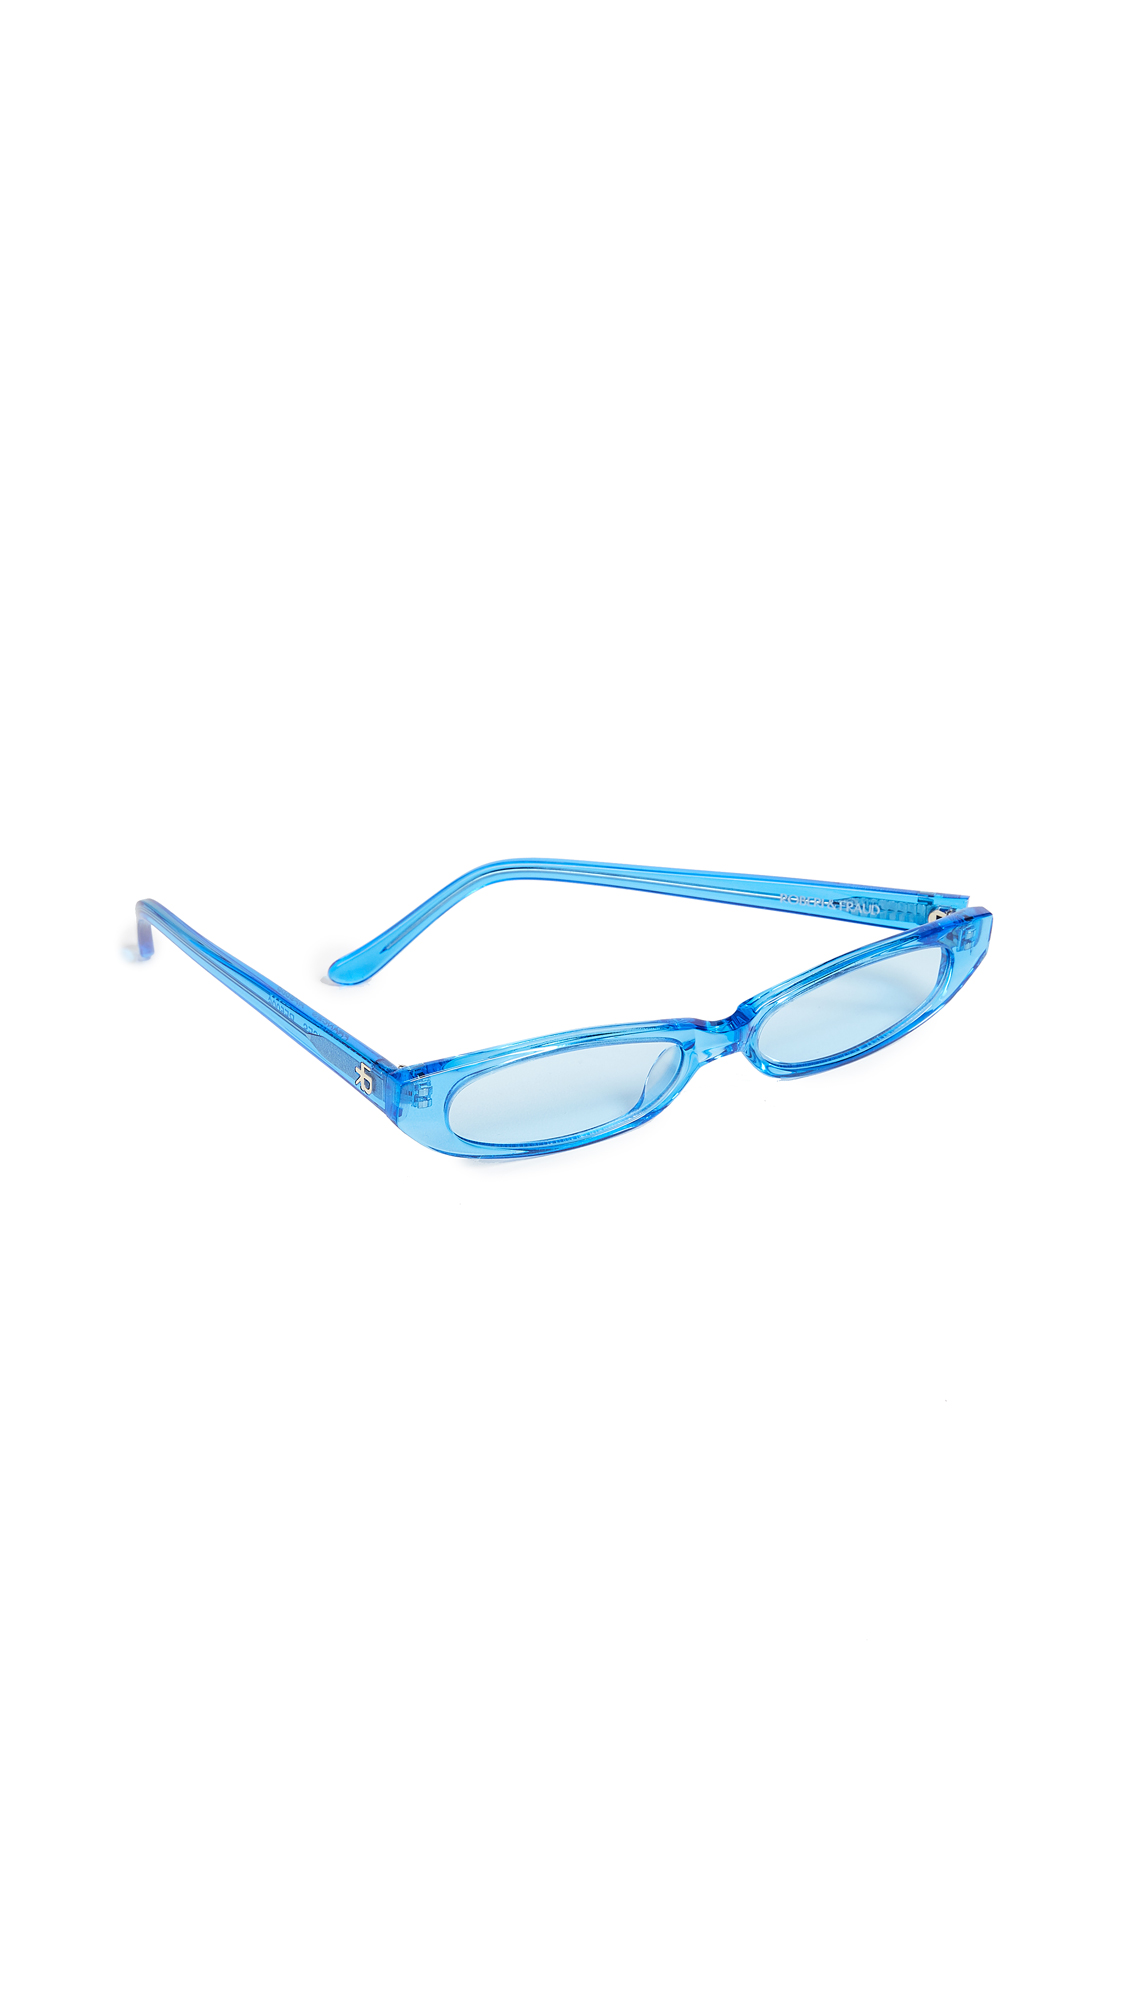 ROBERI & FRAUD Frances Sunglasses in Blue